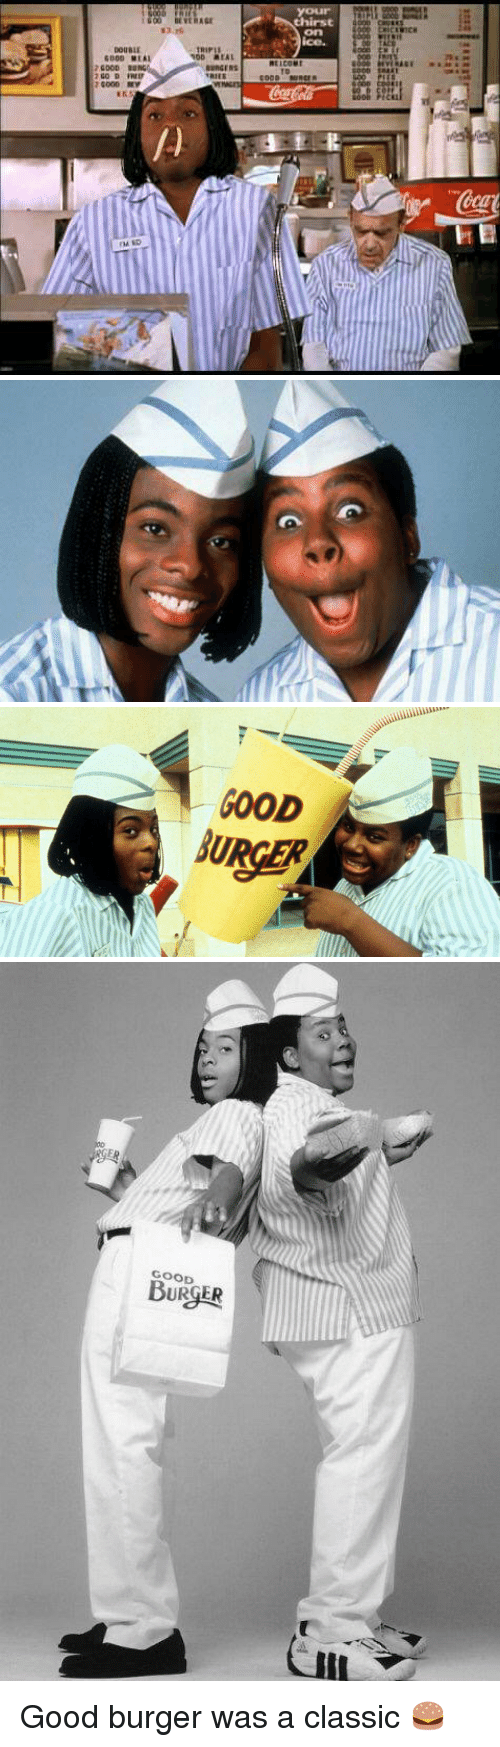 Good Burger: your  RAGE  thirst  ice.  DOUBLE  GOOD MEAL  00 aEAL  nt i cout  7GOOD BUNG  concres  GO D FRIEP  s RIES  7 GOOD  TMED  Ellegalid-11-11  OD 00。  on   フ   GOOD   GOOD  BURGER Good burger was a classic 🍔